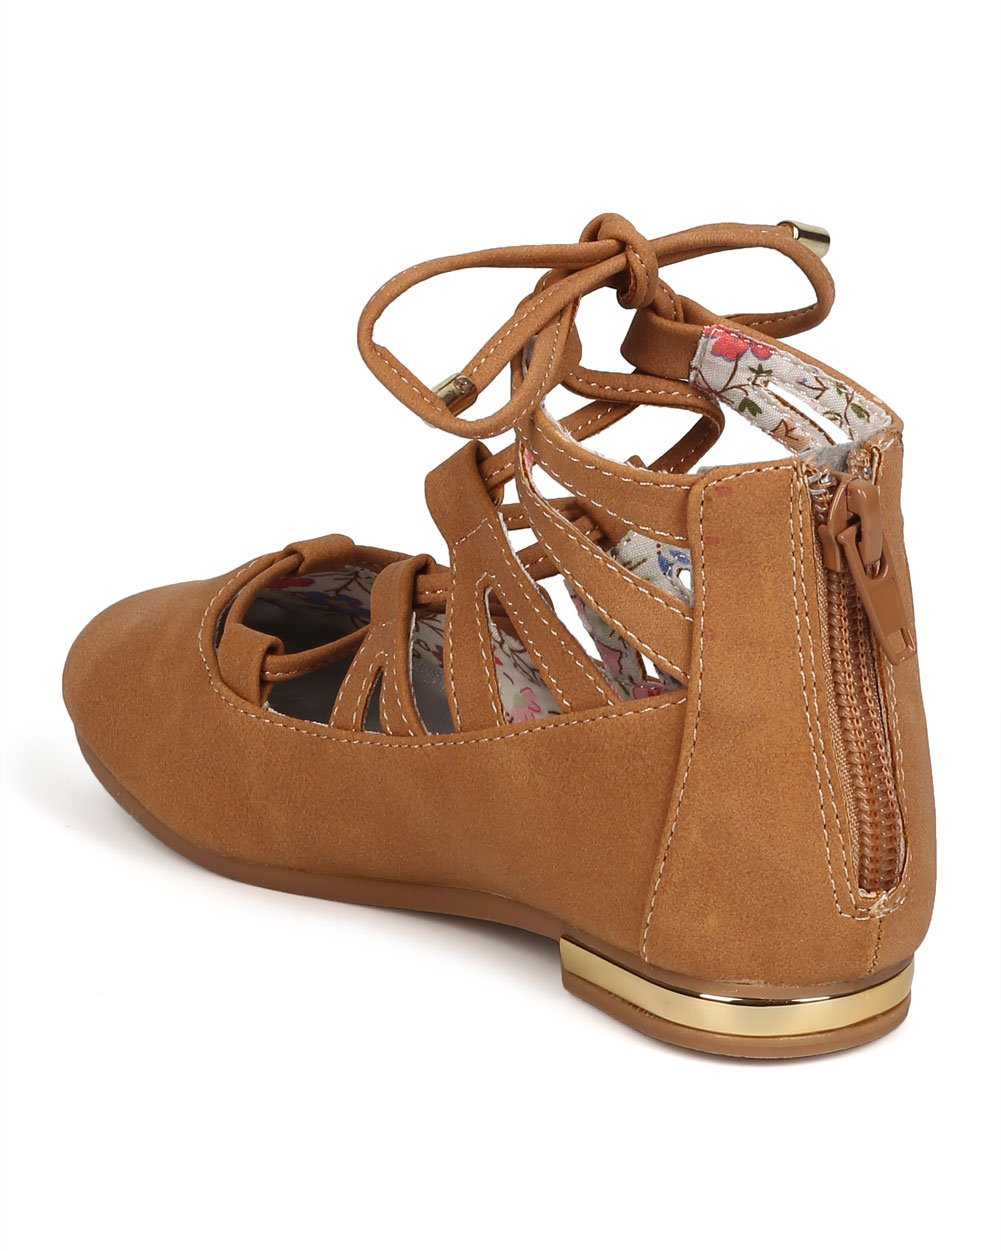 Nubuck Round Toe Lace up Flat (Toddler Girl/Little Girl/Big Girl) FC71 - Beige (Size: Toddler 10) by Little Angel (Image #3)